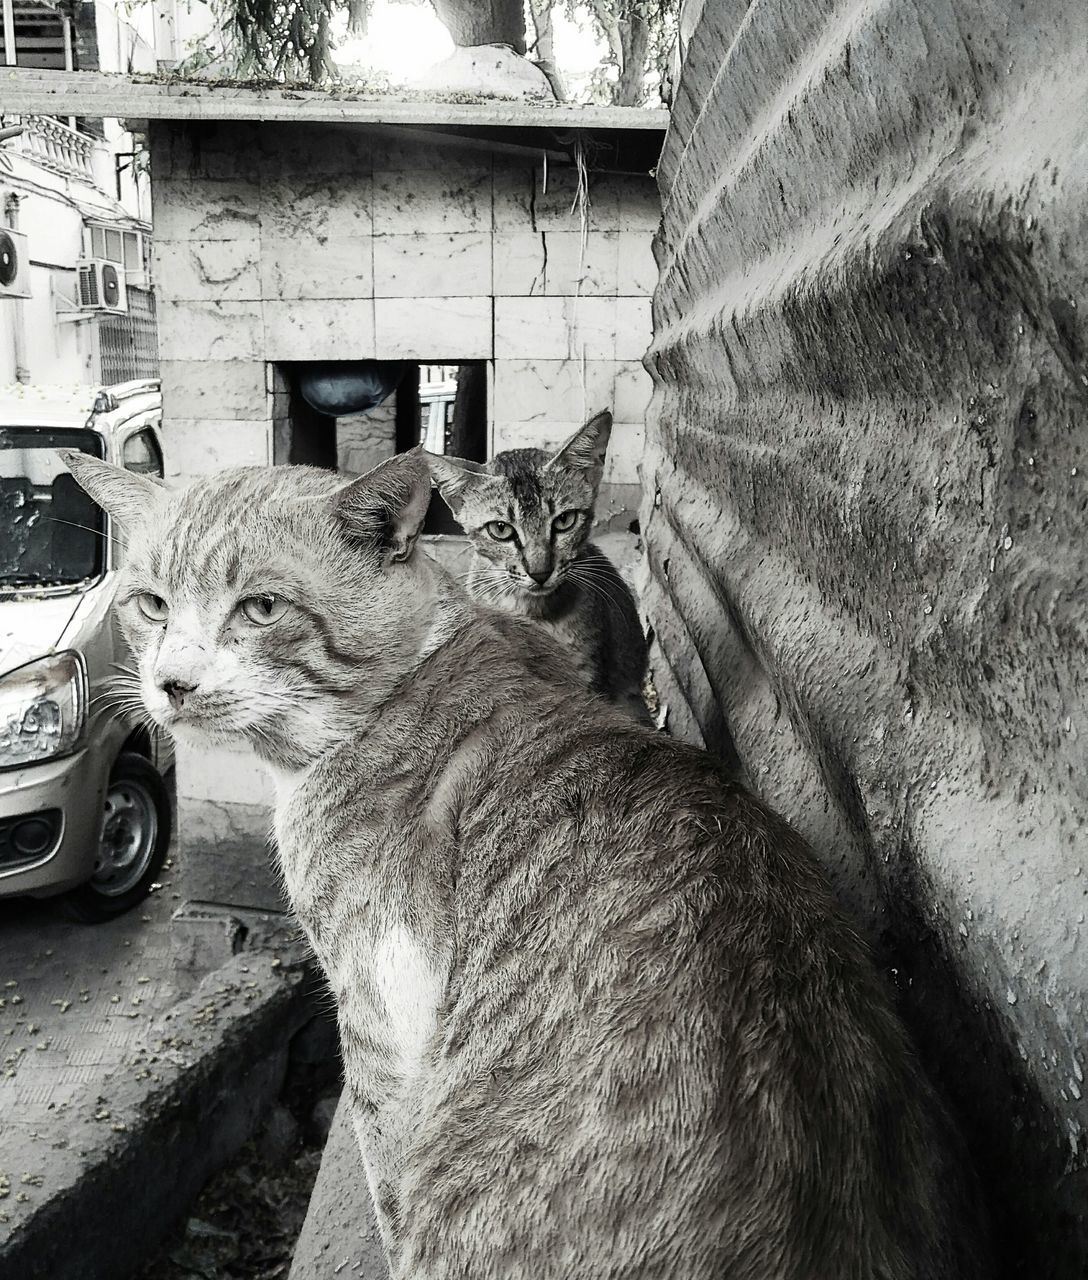 domestic animals, mammal, domestic cat, animal themes, pets, no people, one animal, feline, day, built structure, outdoors, architecture, close-up